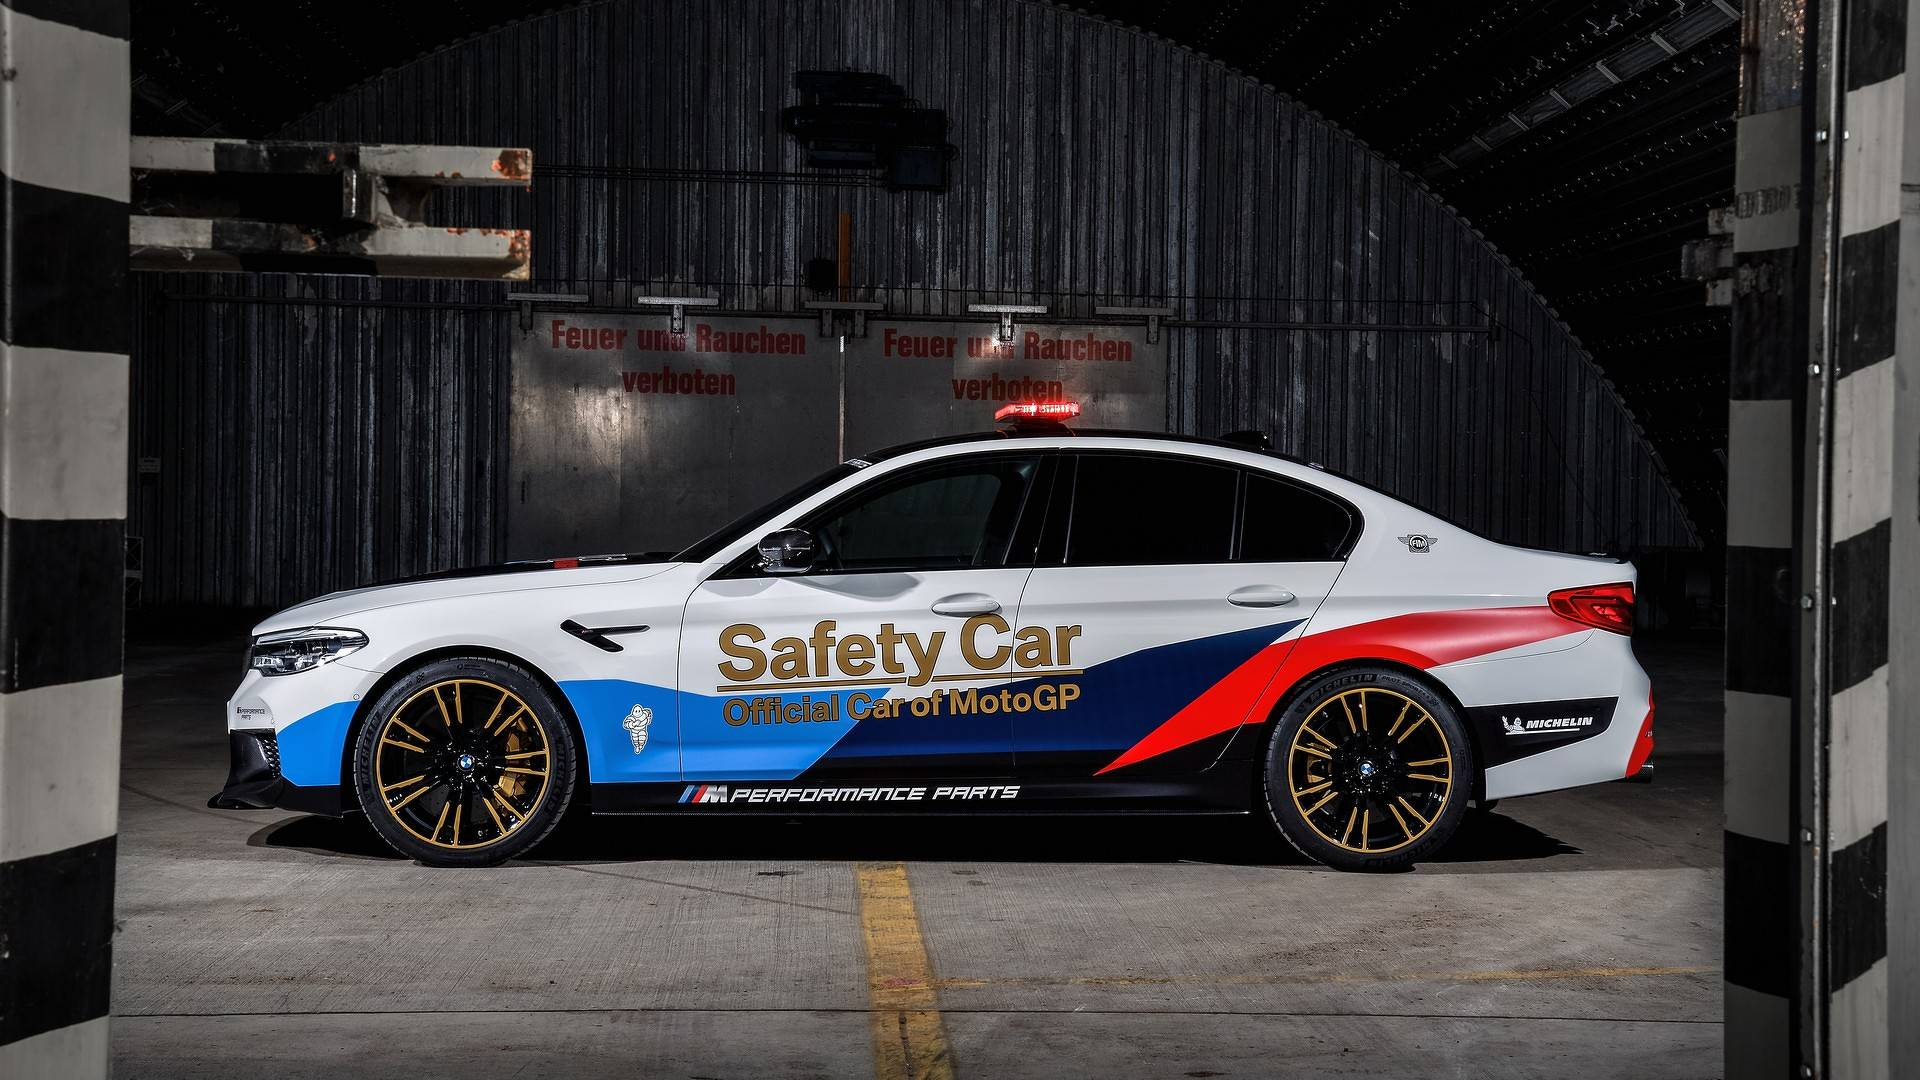 bmw-m5-motogp-safety-car (17)